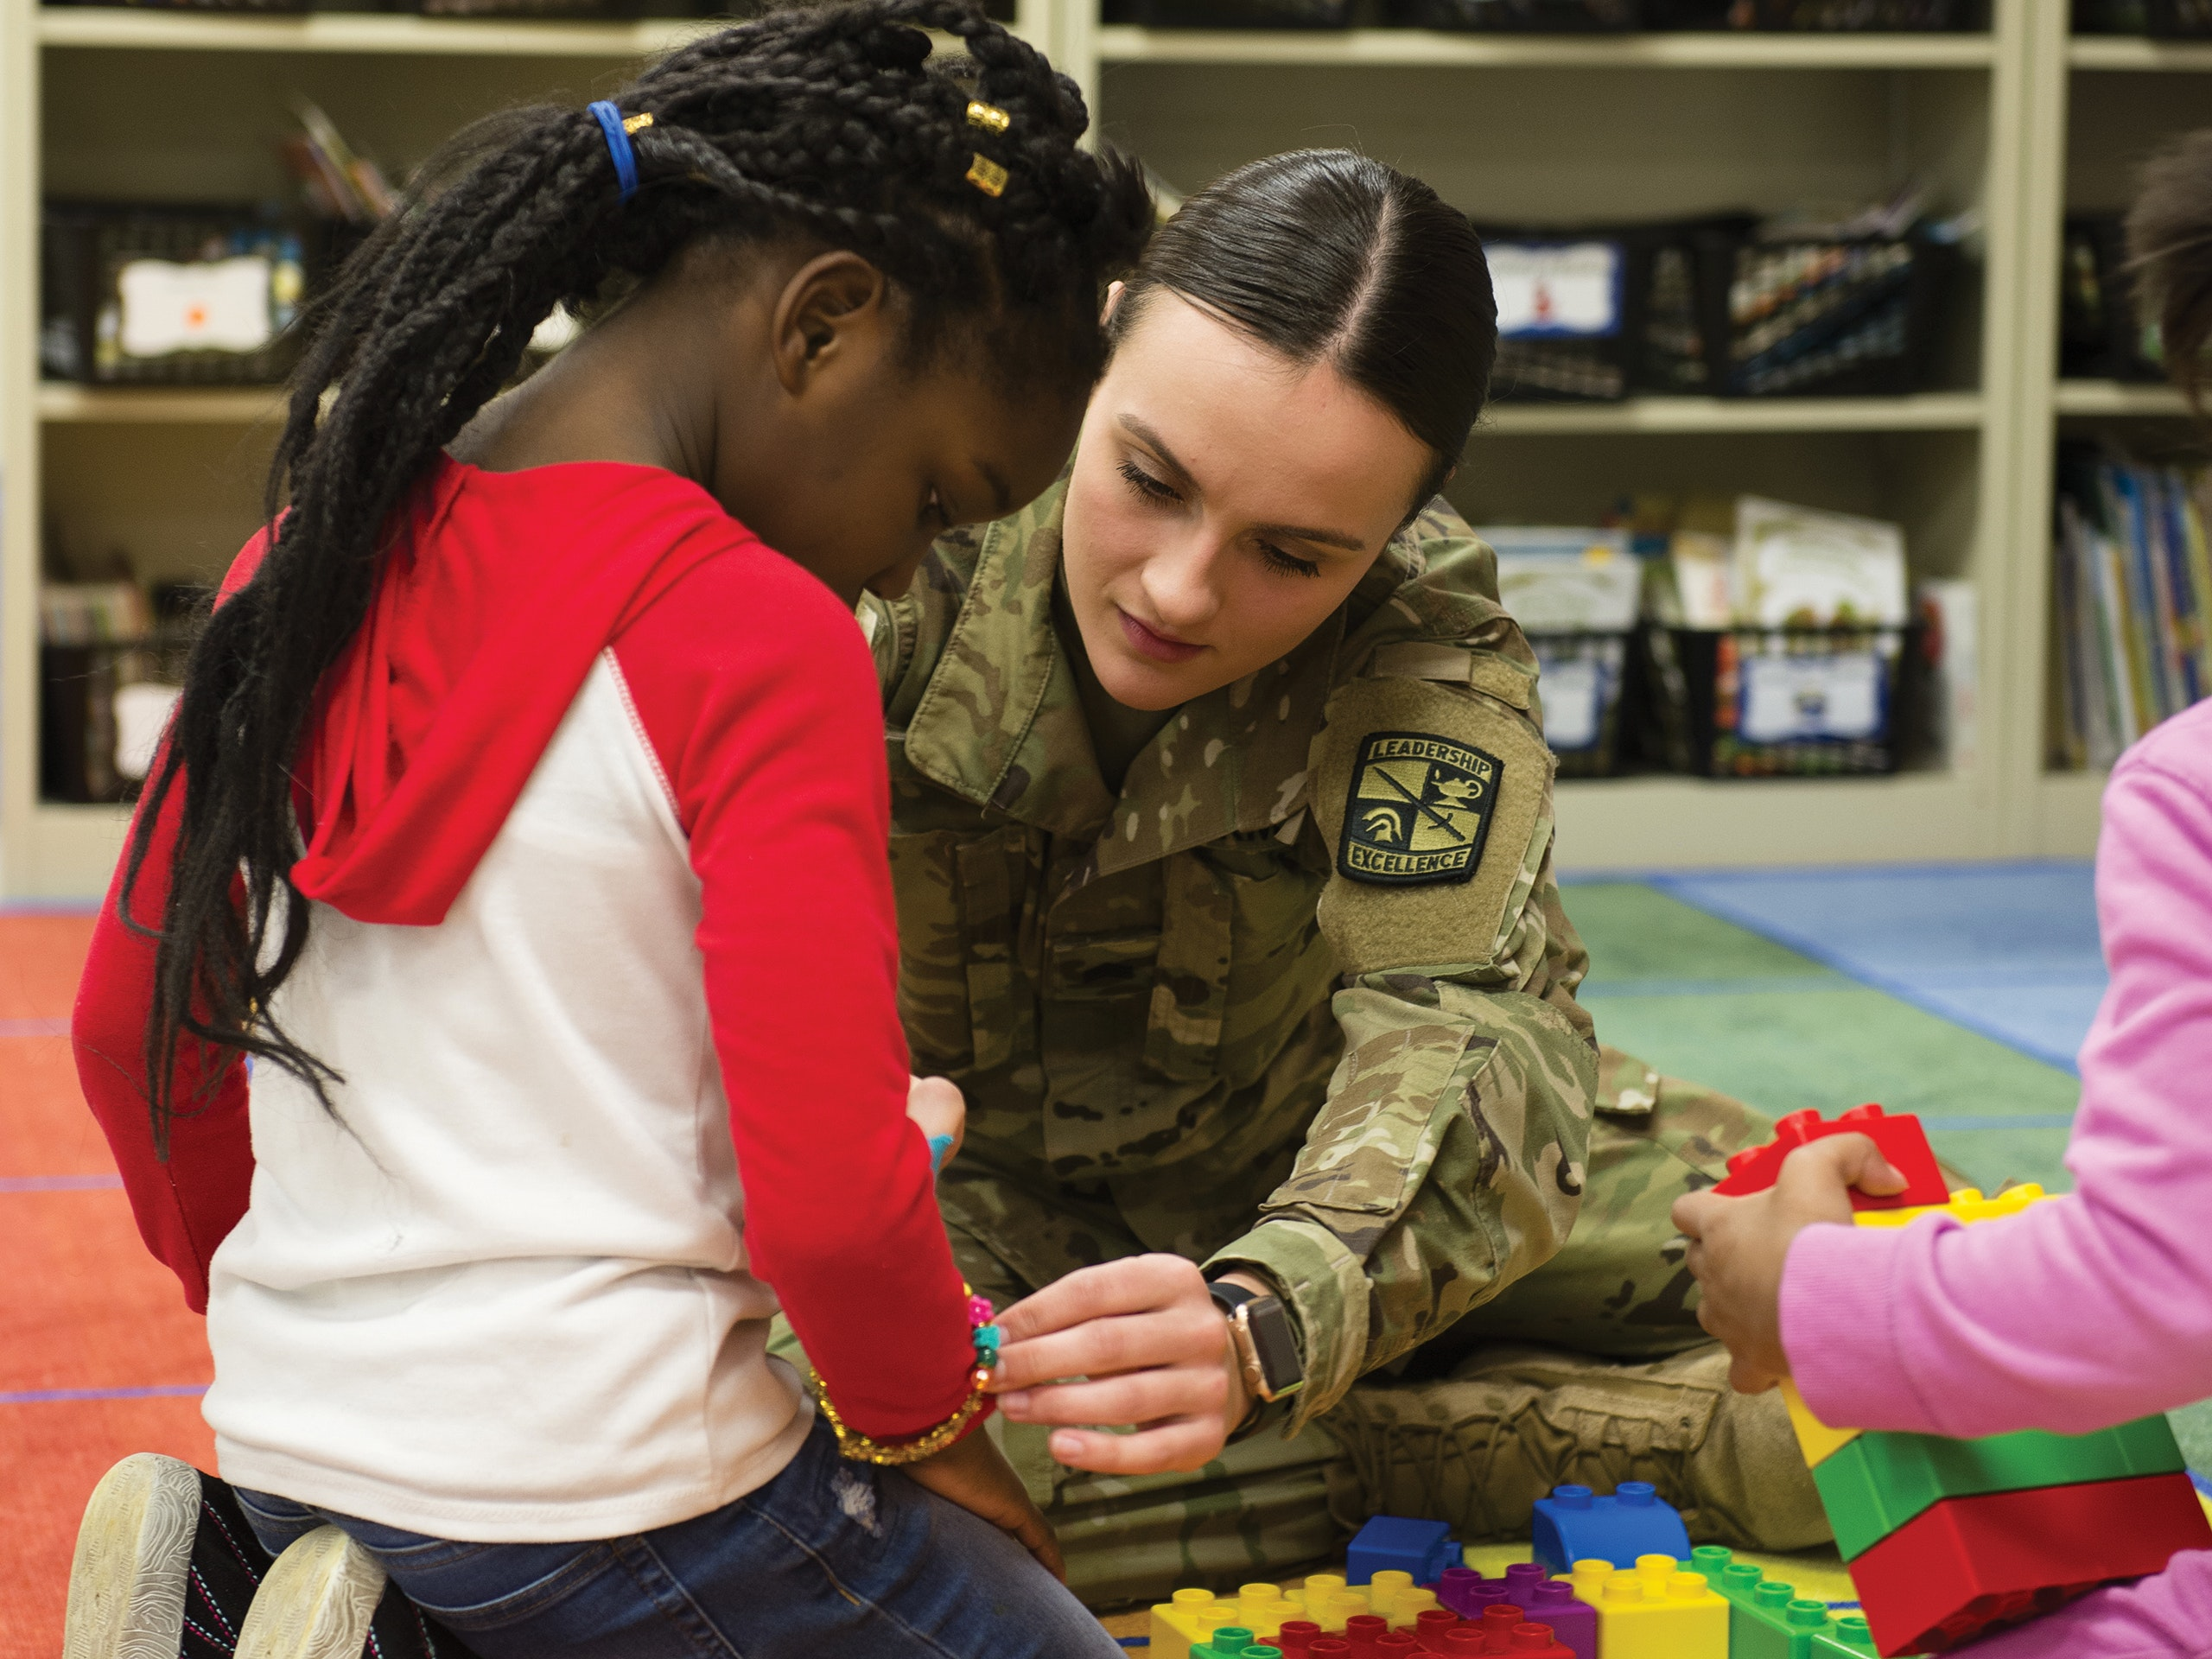 Female ROTC student in uniform helping a small girl on an elementary school classroom floor that is scattered with large Legos.